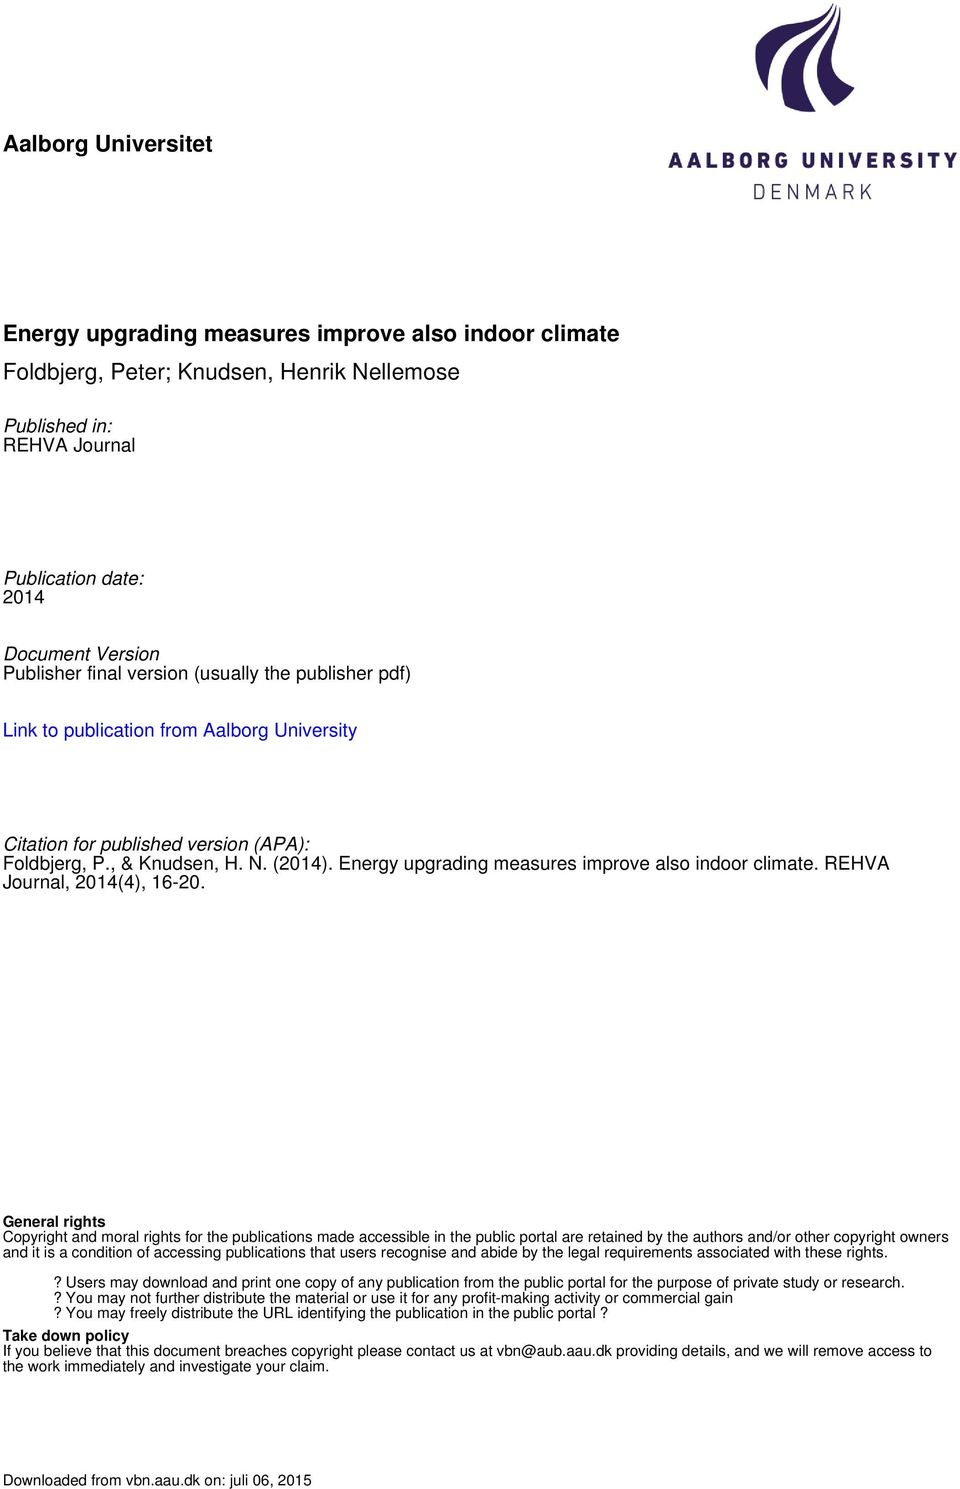 Energy upgrading measures improve also indoor climate. REHVA Journal, 2014(4), 16-20.